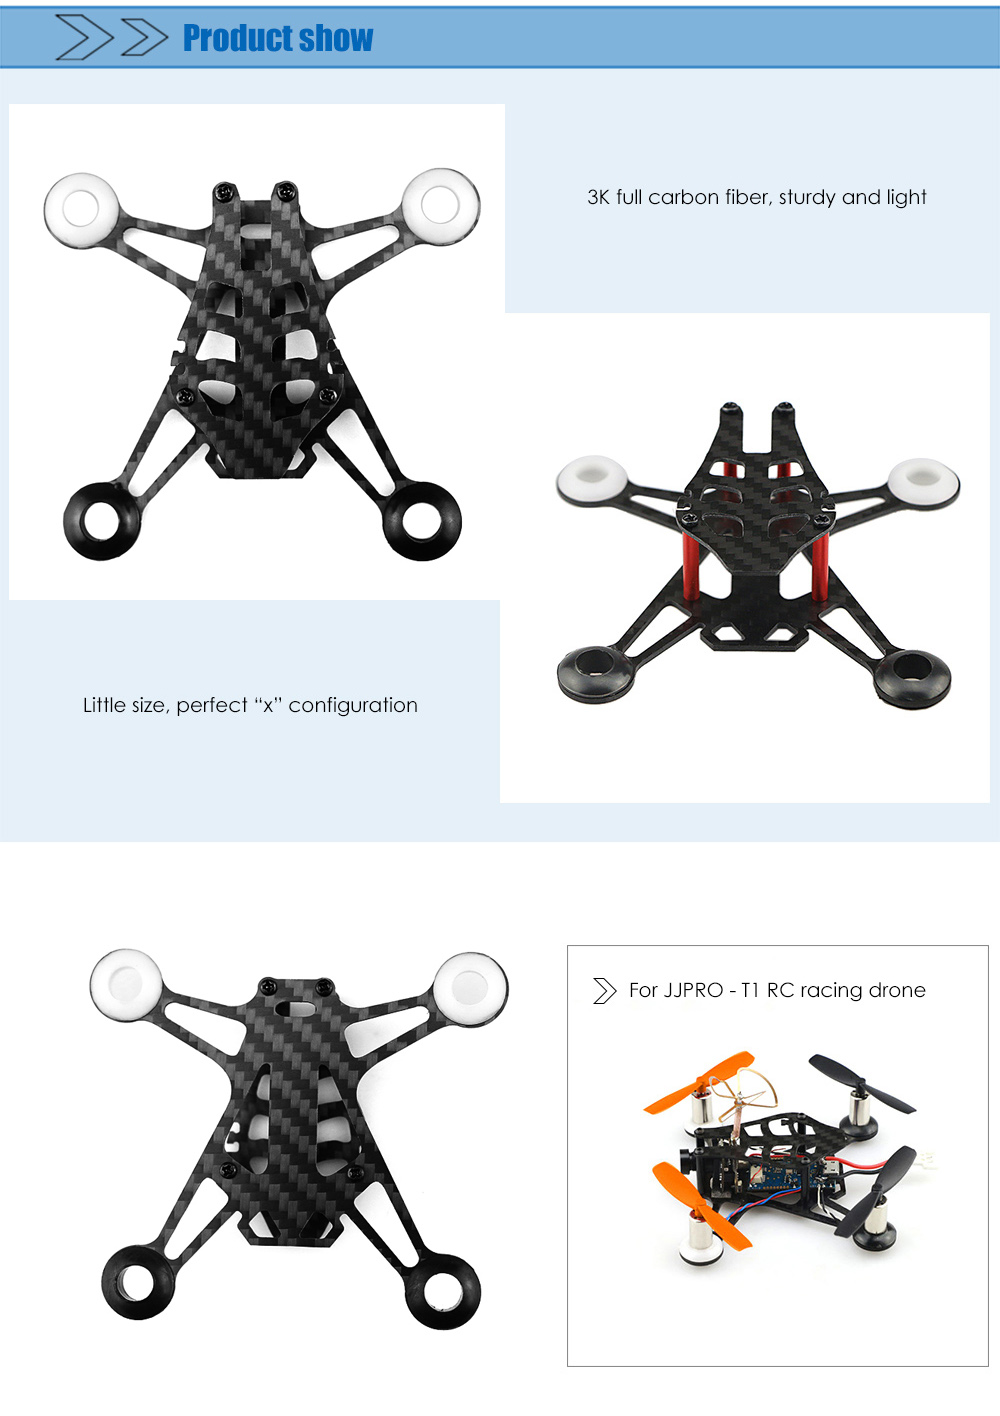 Original JJRC 95mm Carbon Fiber Frame for JJPRO - T1 RC Racing Drone